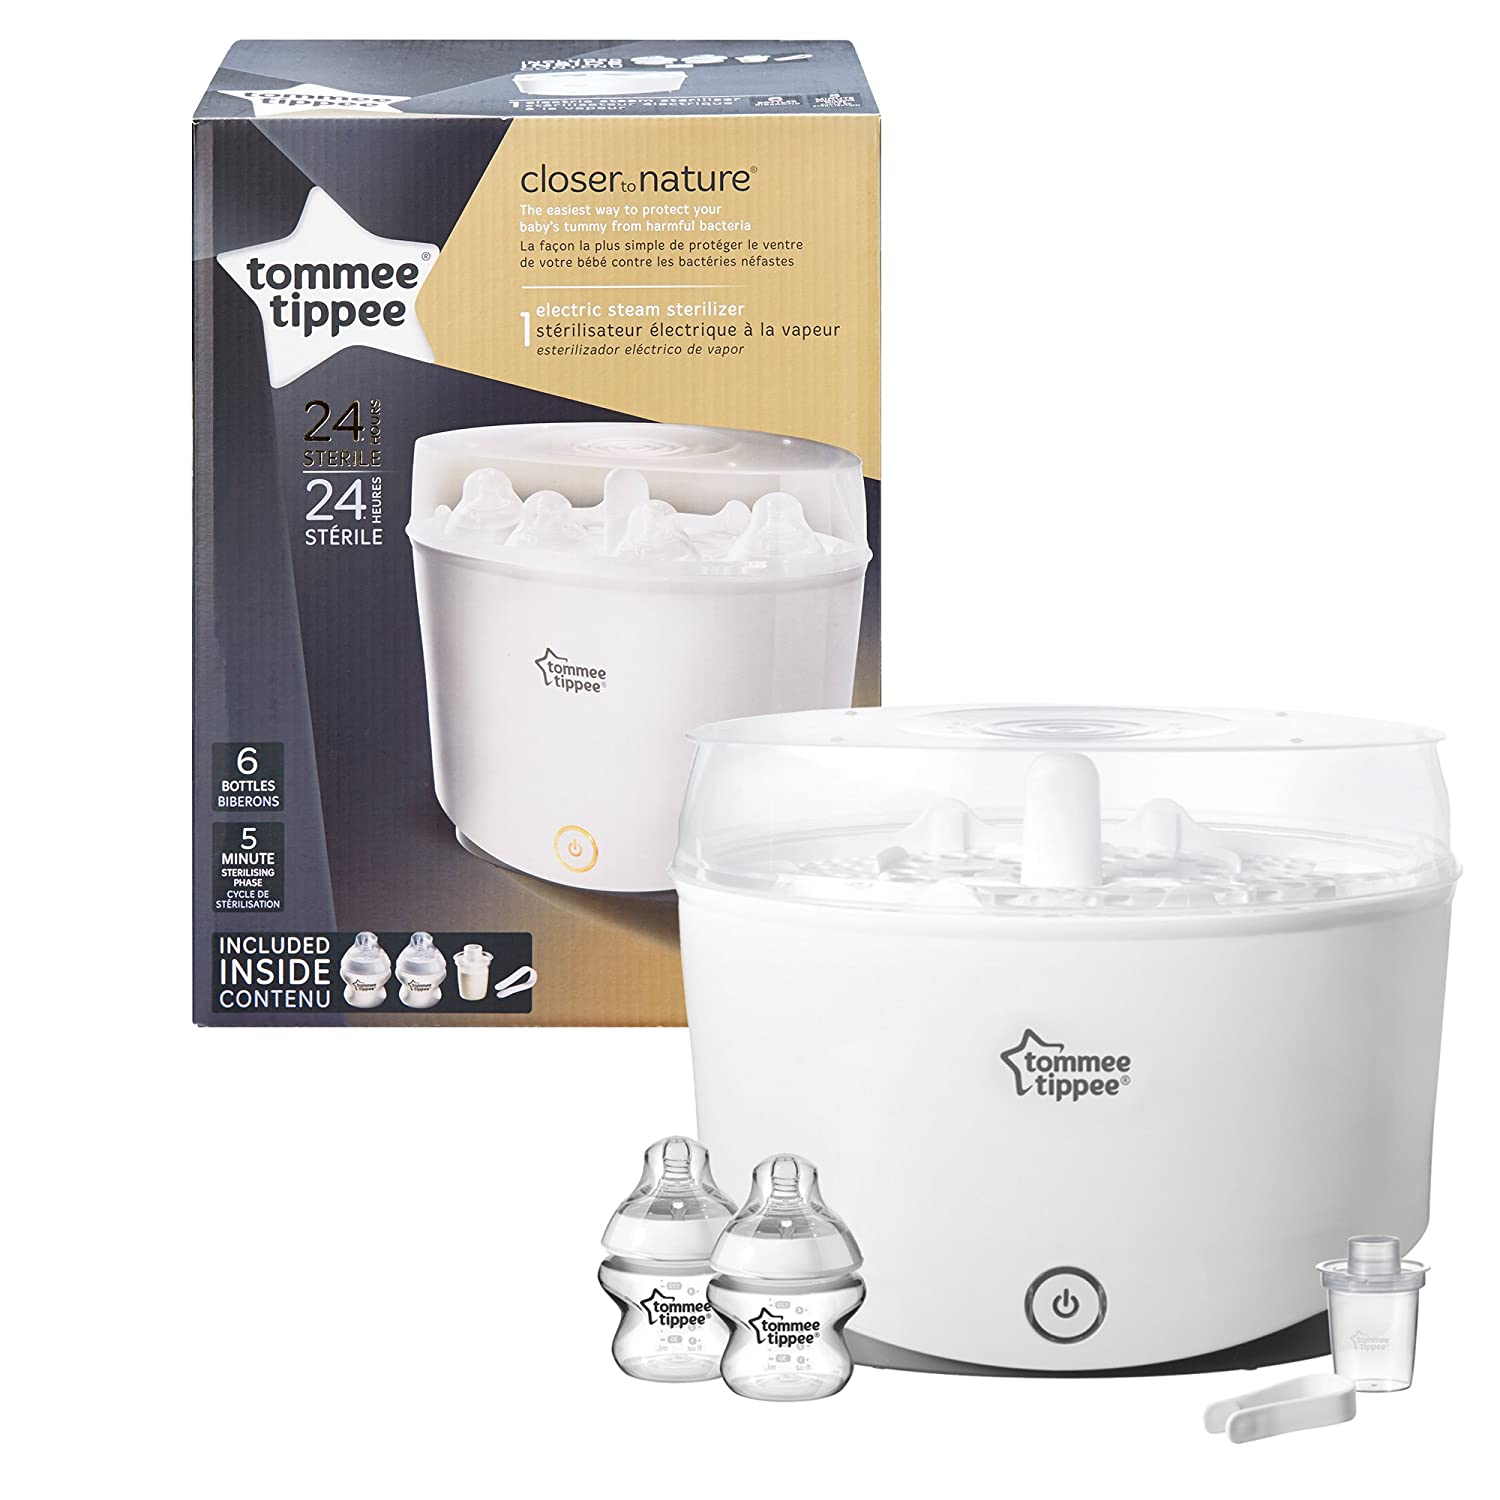 Tommee Tippee Closer to Nature - Esterilizador de vapor eléctrico: Amazon.es: Bebé